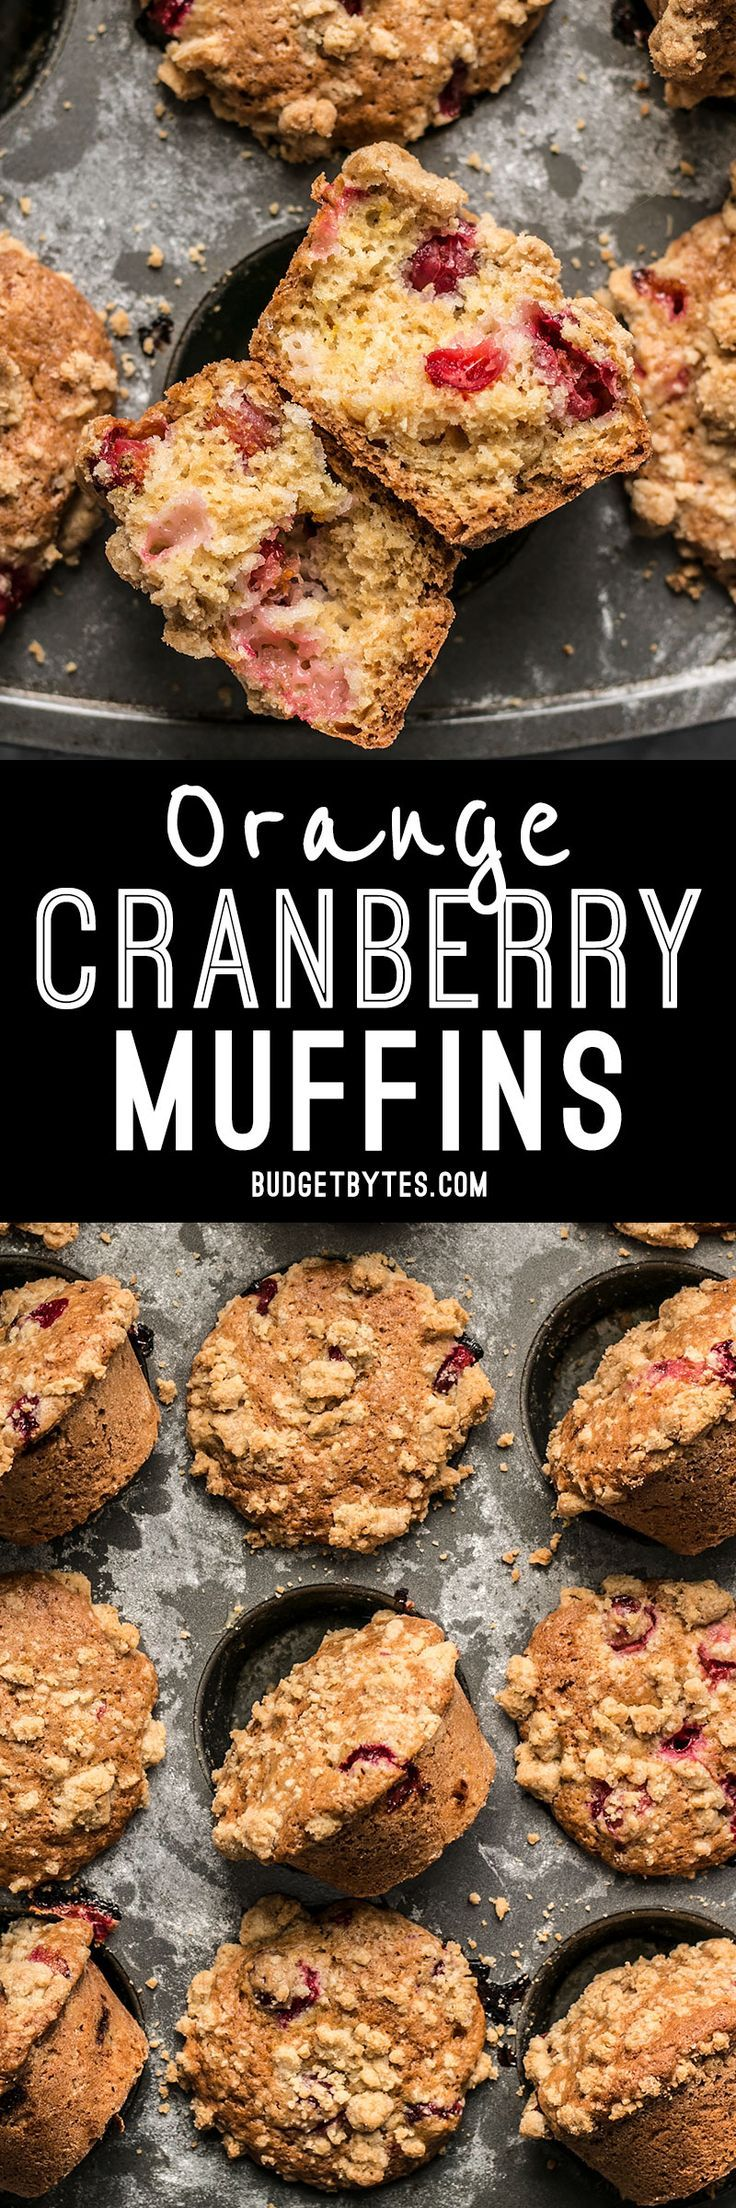 These Orange Cranberry Muffins are a holiday staple in my house and extras can be frozen for a quick treat whenever the craving hits.